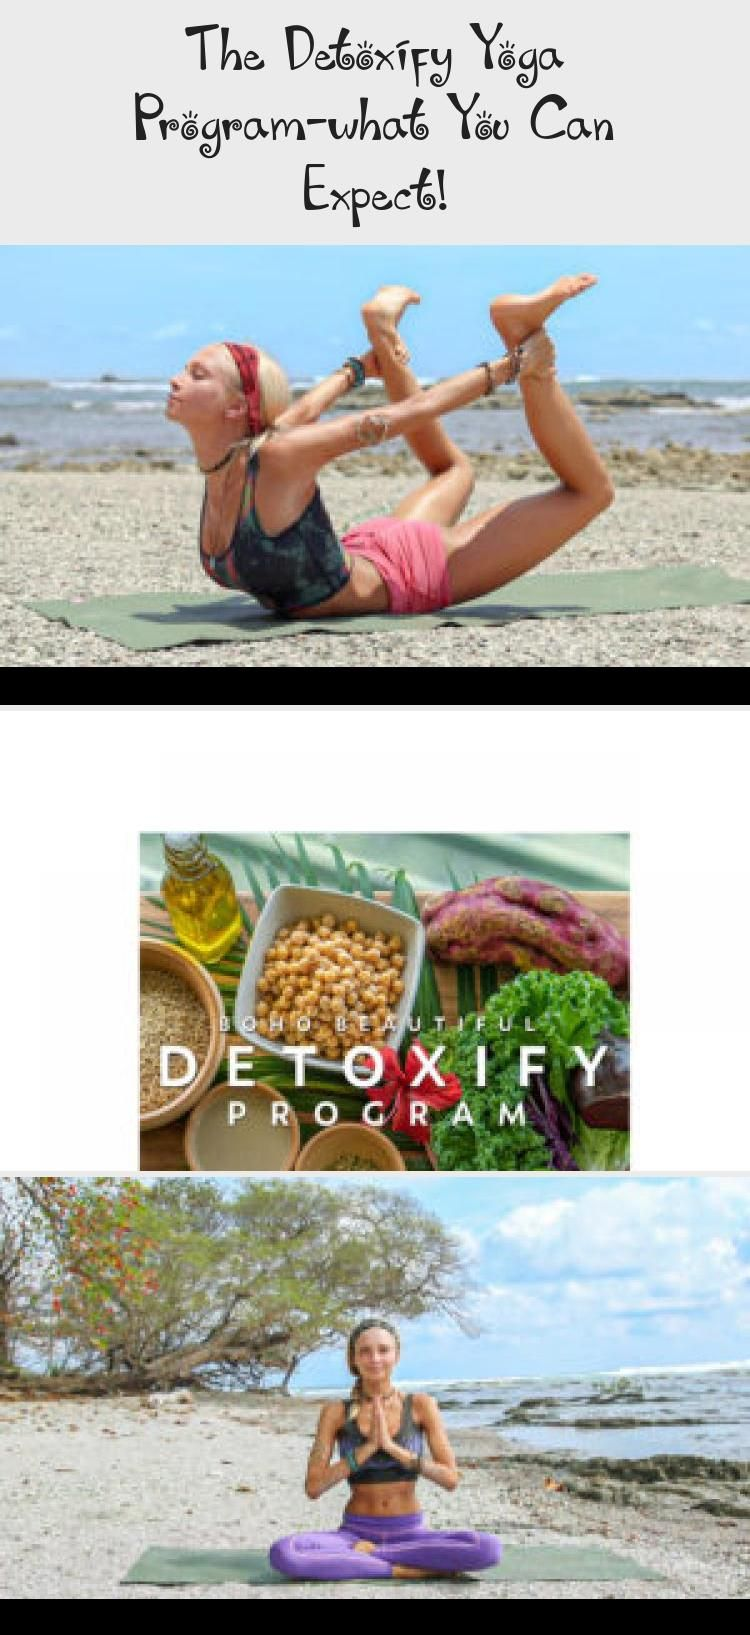 The yoga classes in the Detoxify Program were designed with that one idea in mind. What is it holdin...